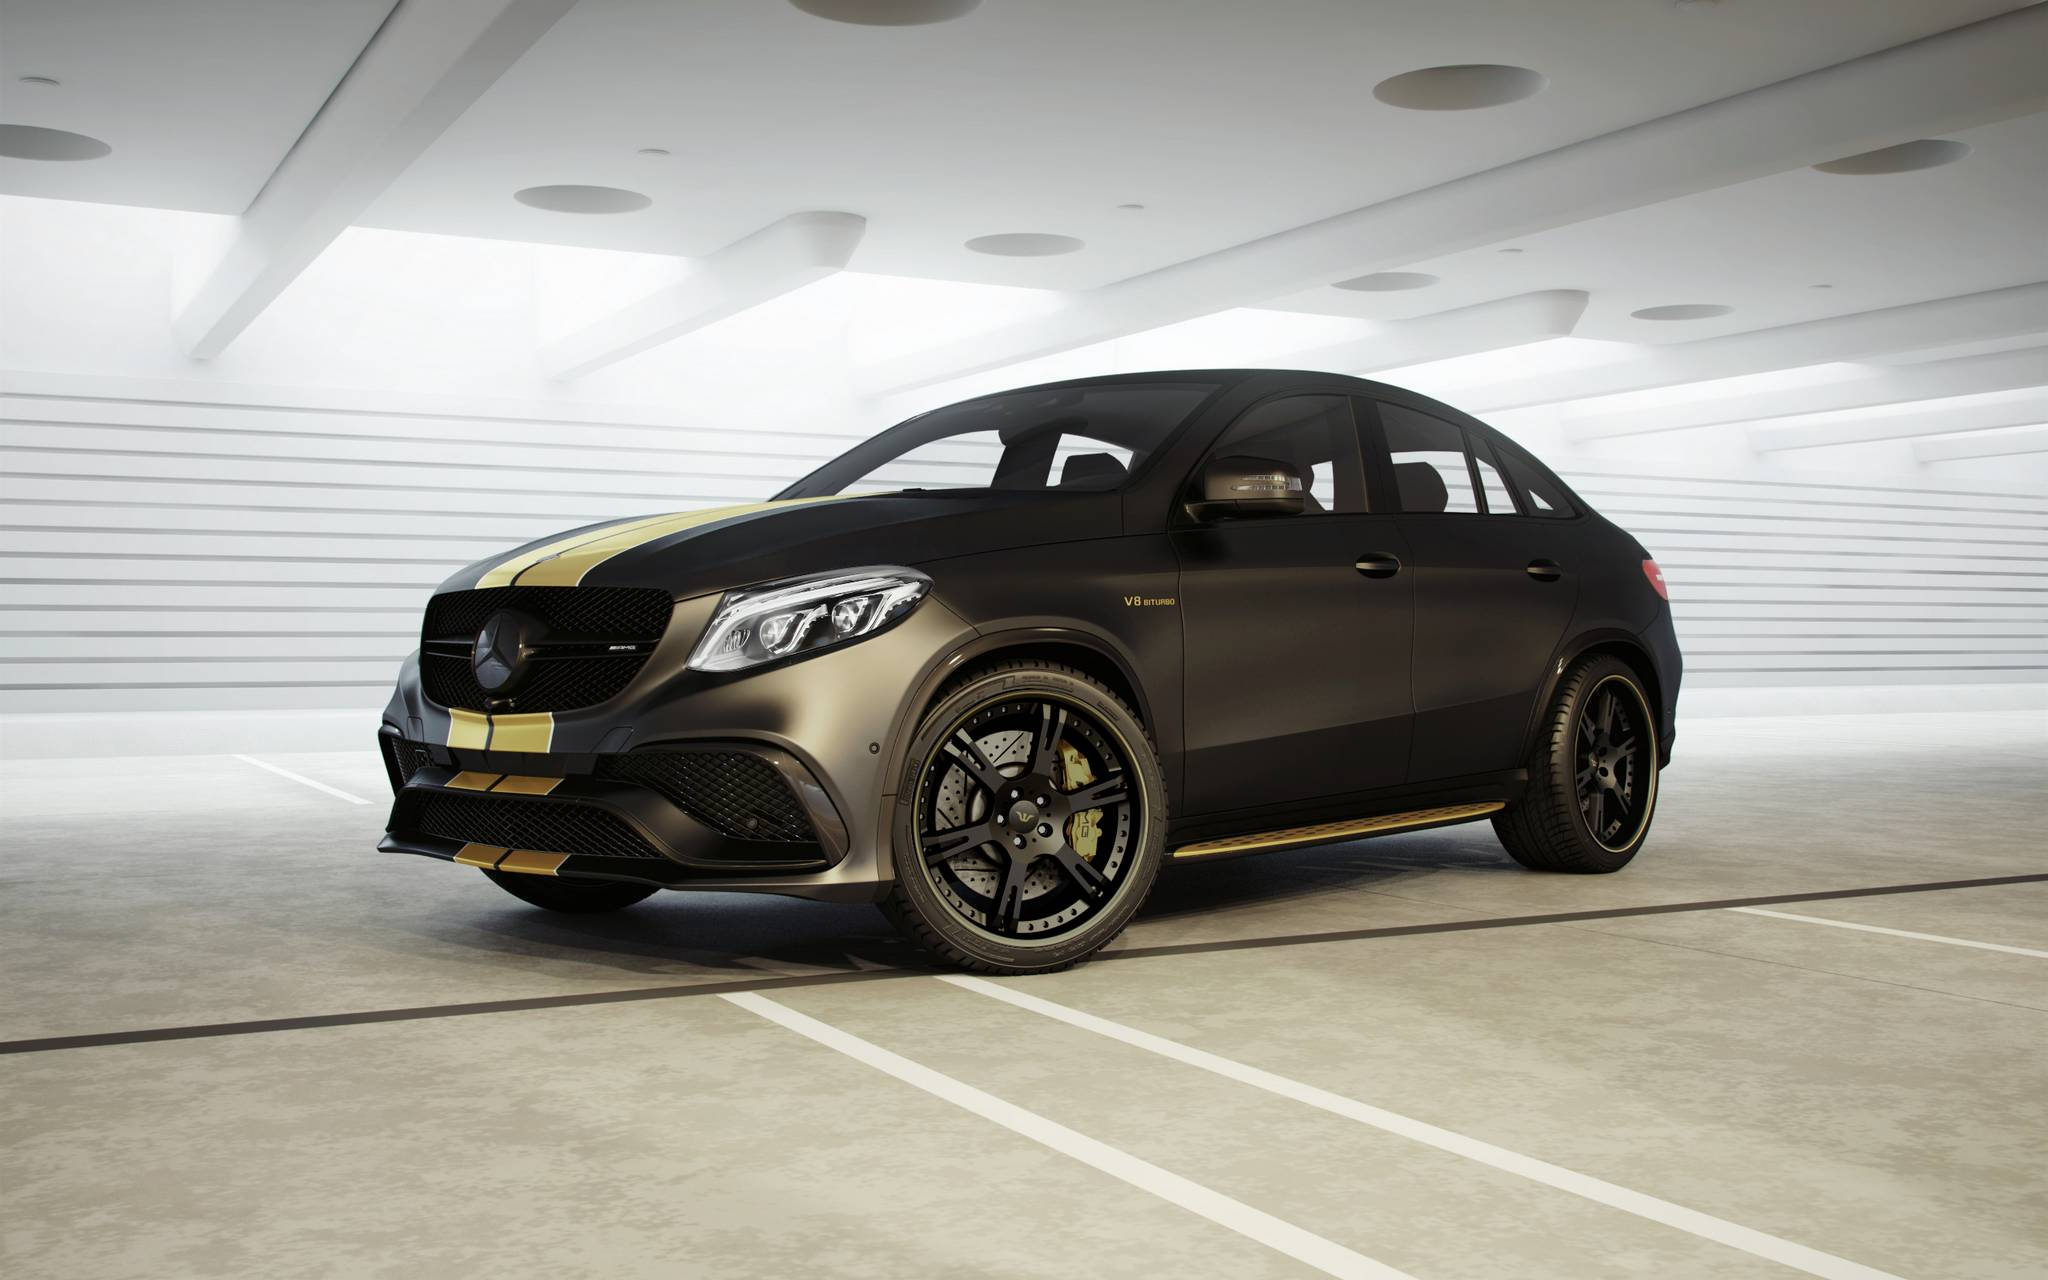 official 792hp mercedes amg gle 63 by wheelsandmore gtspirit. Black Bedroom Furniture Sets. Home Design Ideas